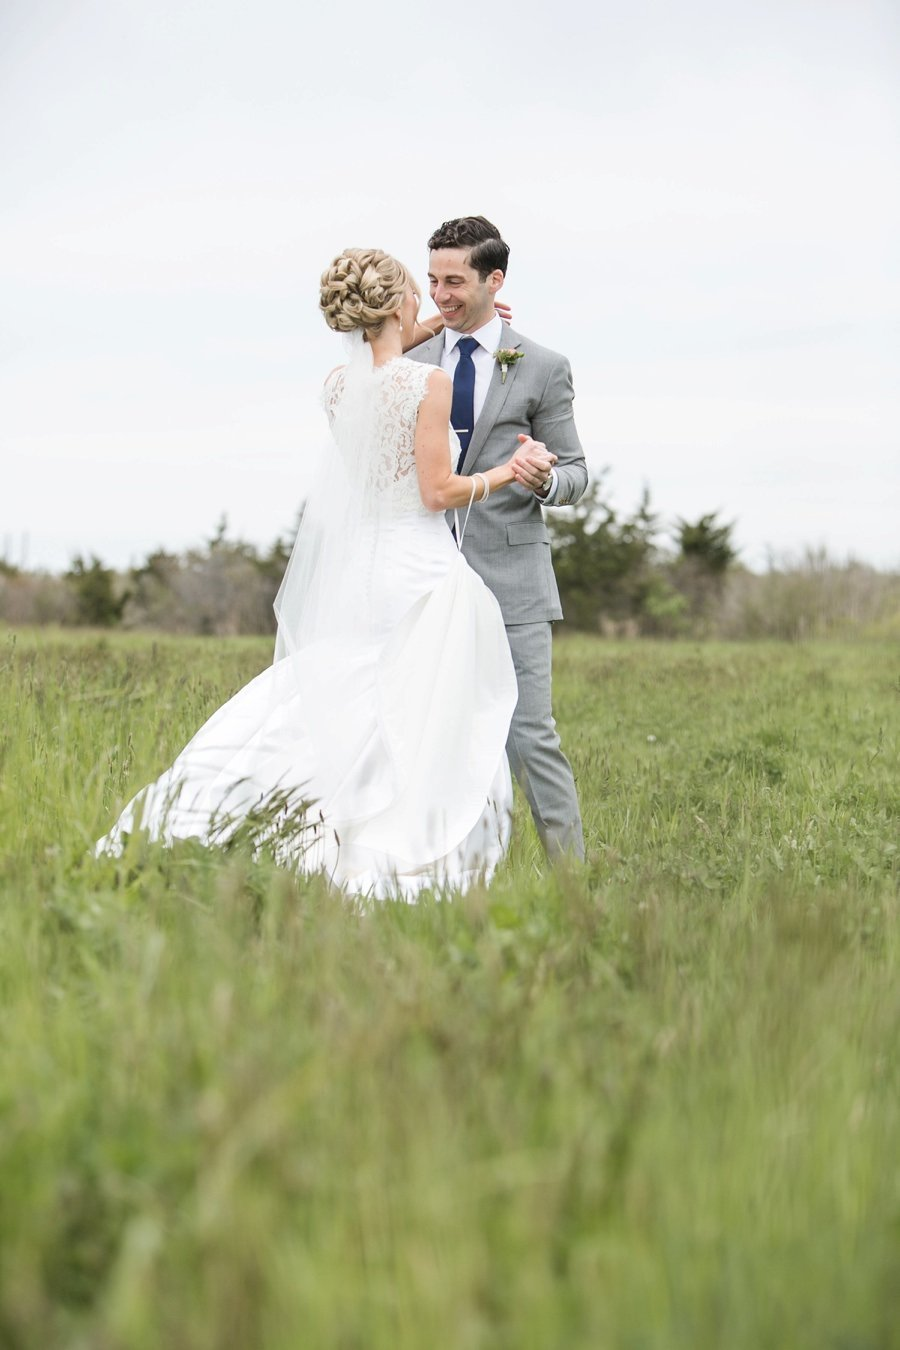 saltwater_farm_vineyard_wedding_stonington_ct_0020